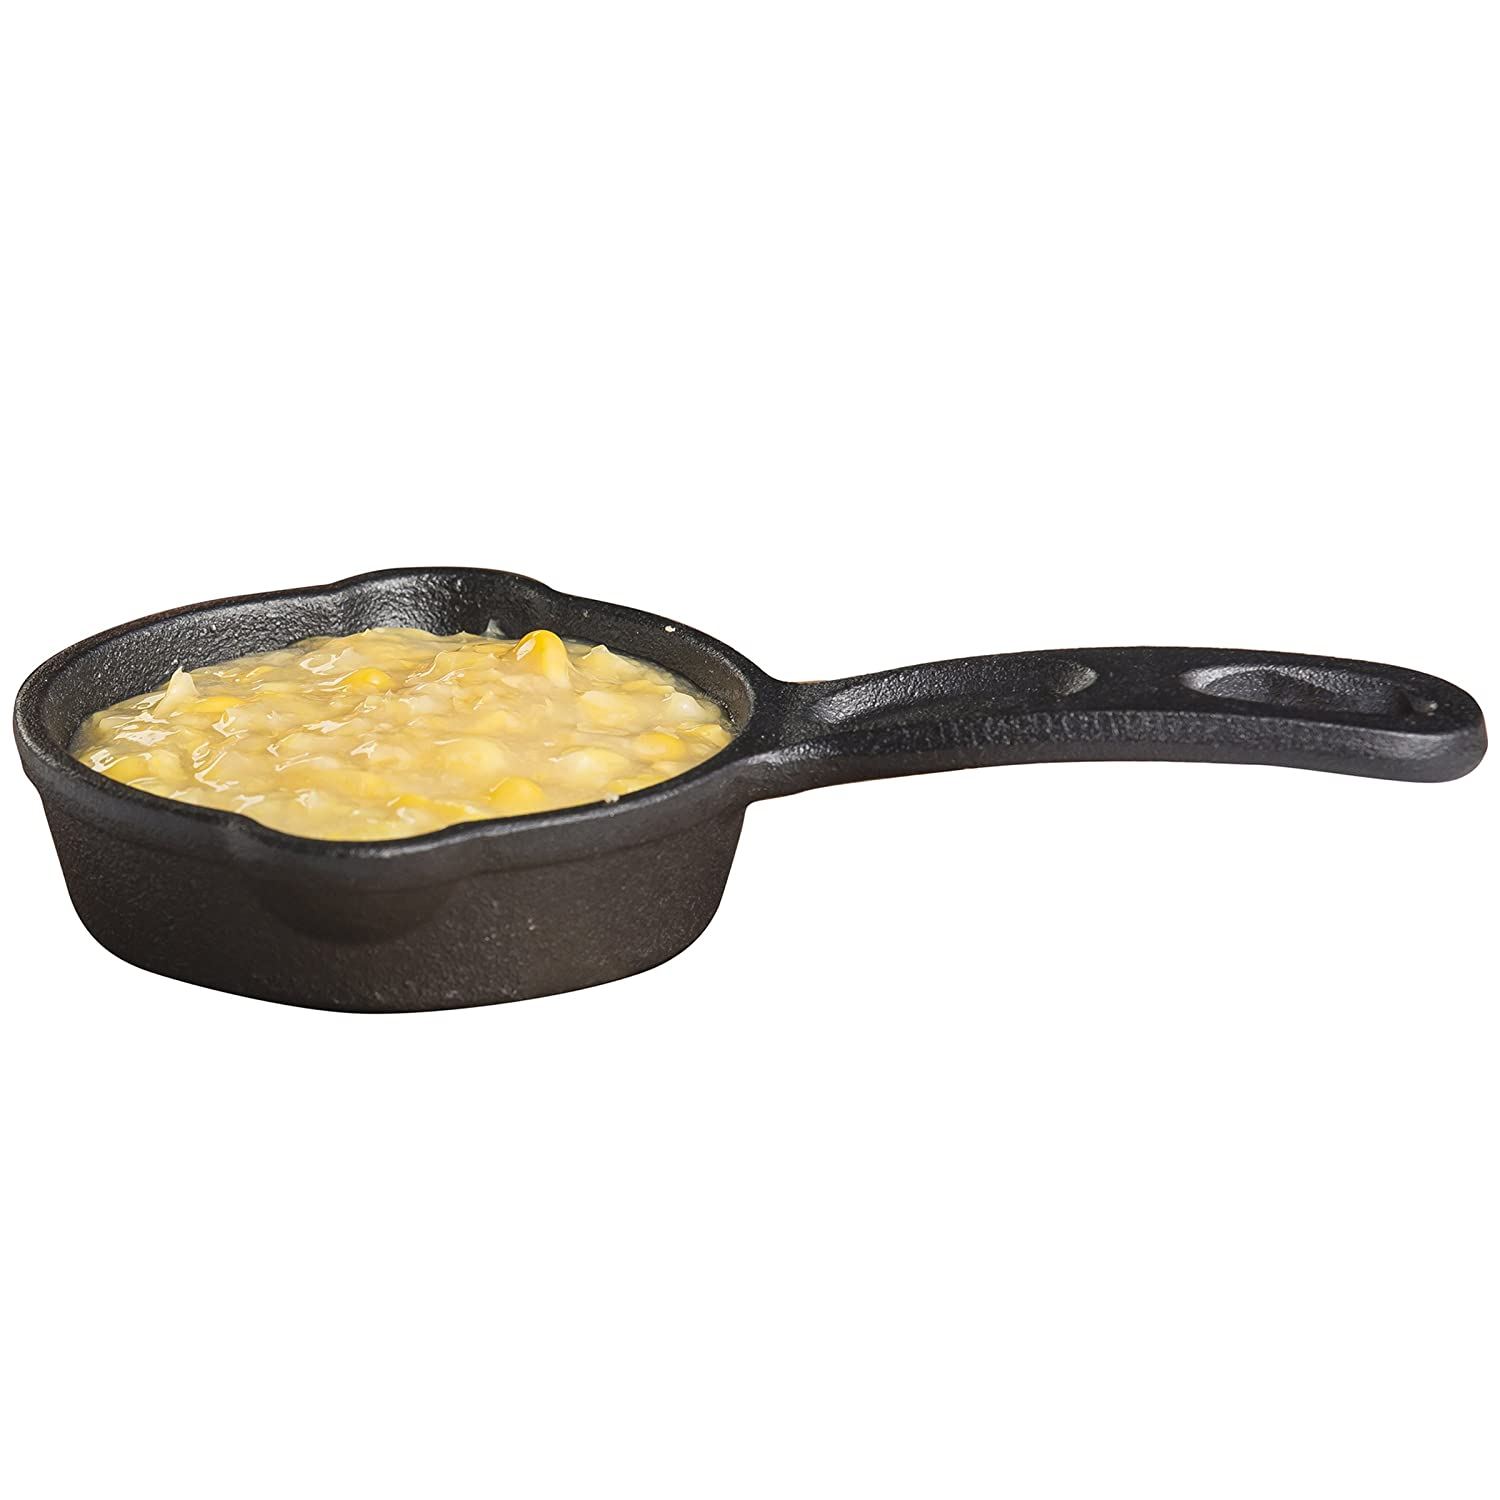 "TableCraft Products CW30122 Cast Iron Mini Round Skillet 3⅝"" Dia (6⅞"" with Handle) x 1¼"" D, 1.25"" Height, 4.125"" Width, 6.875"" Length"